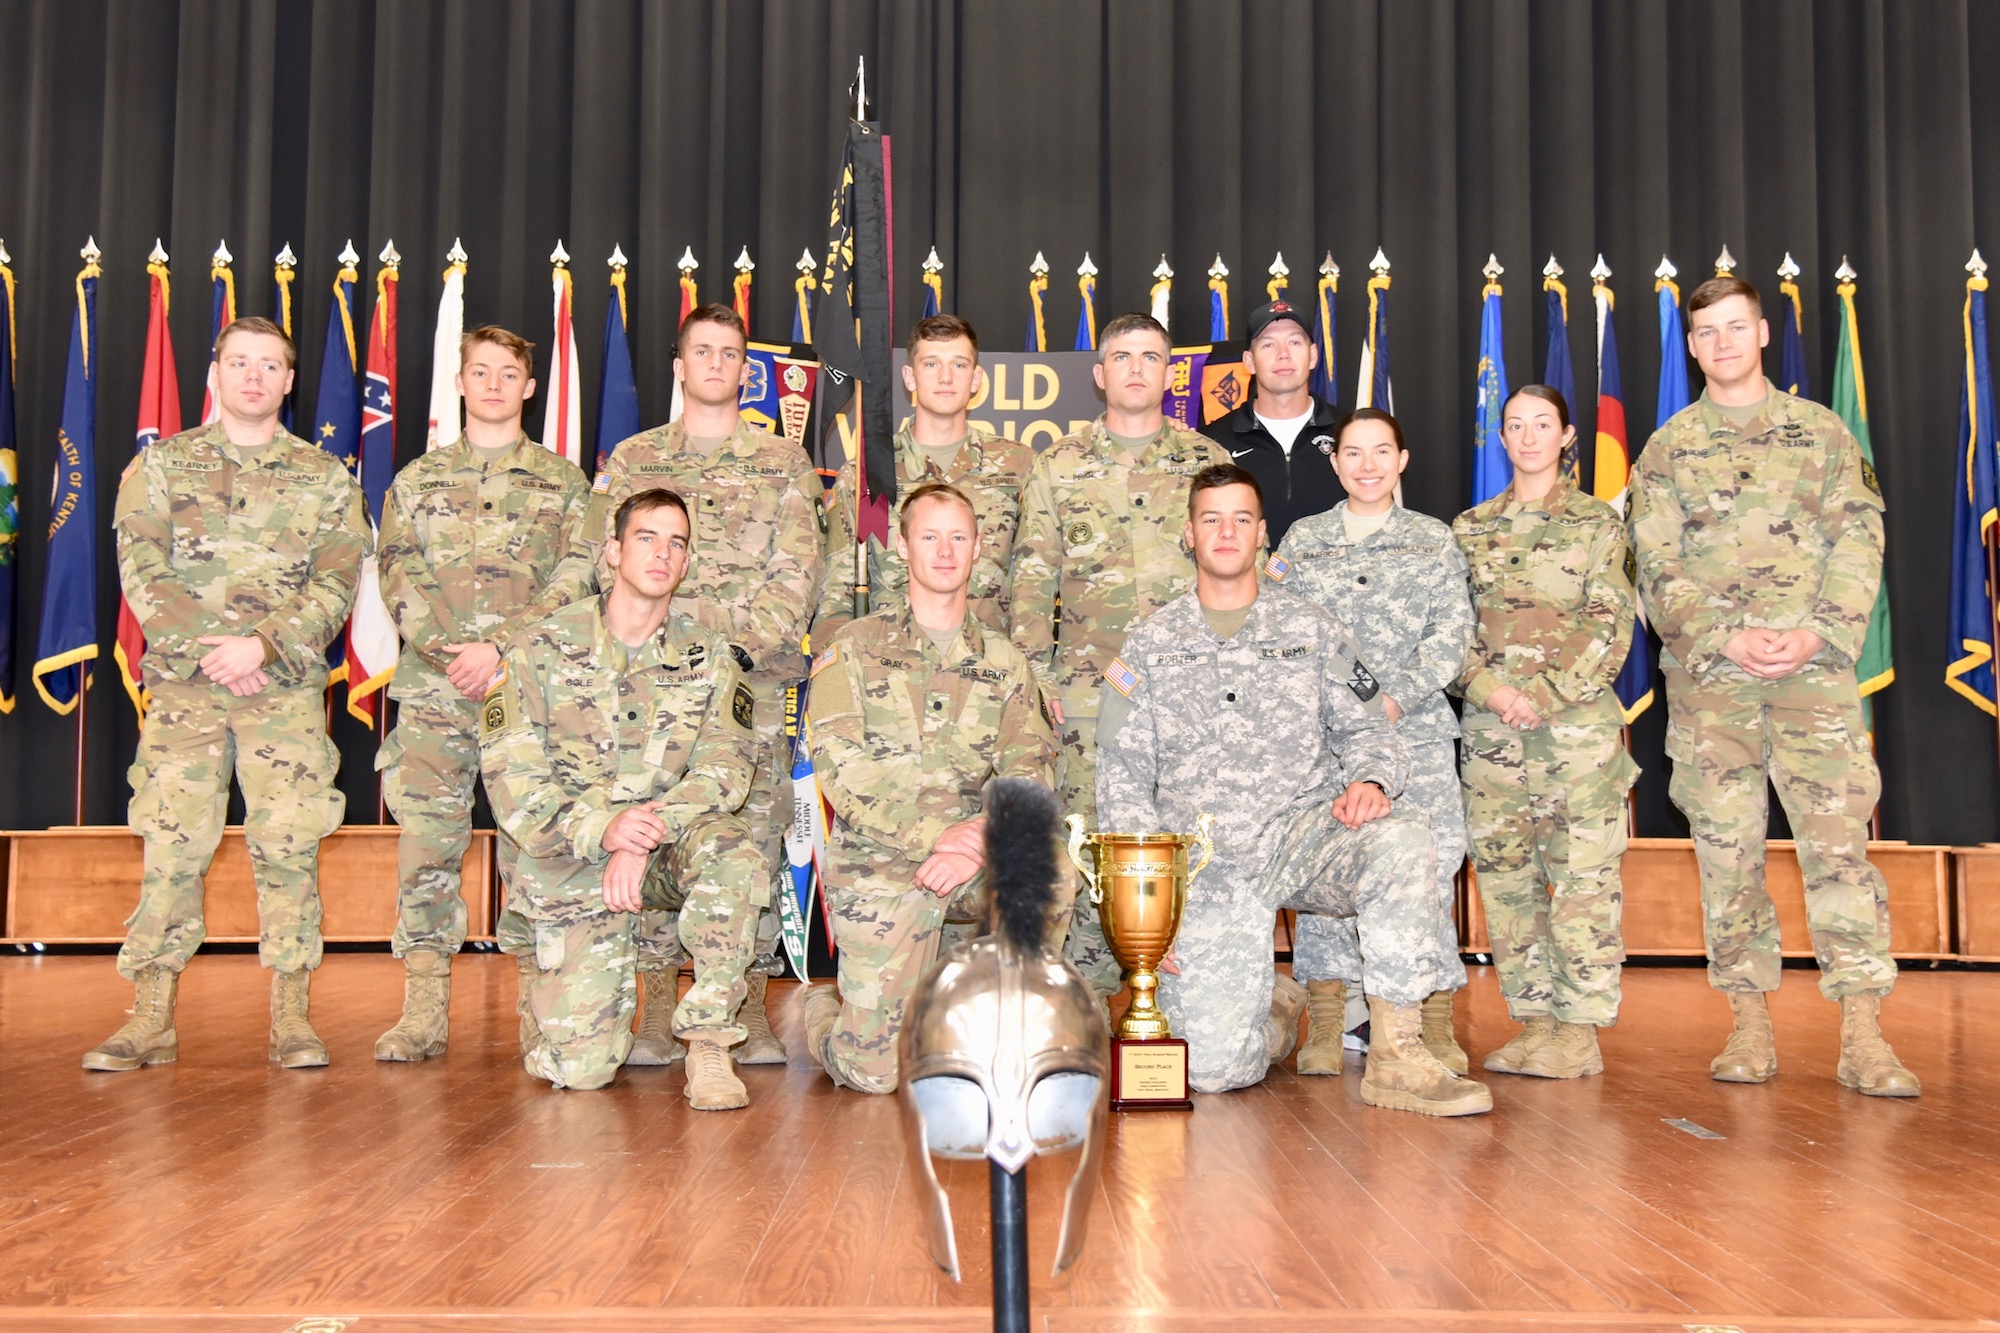 ROTC students pose for award